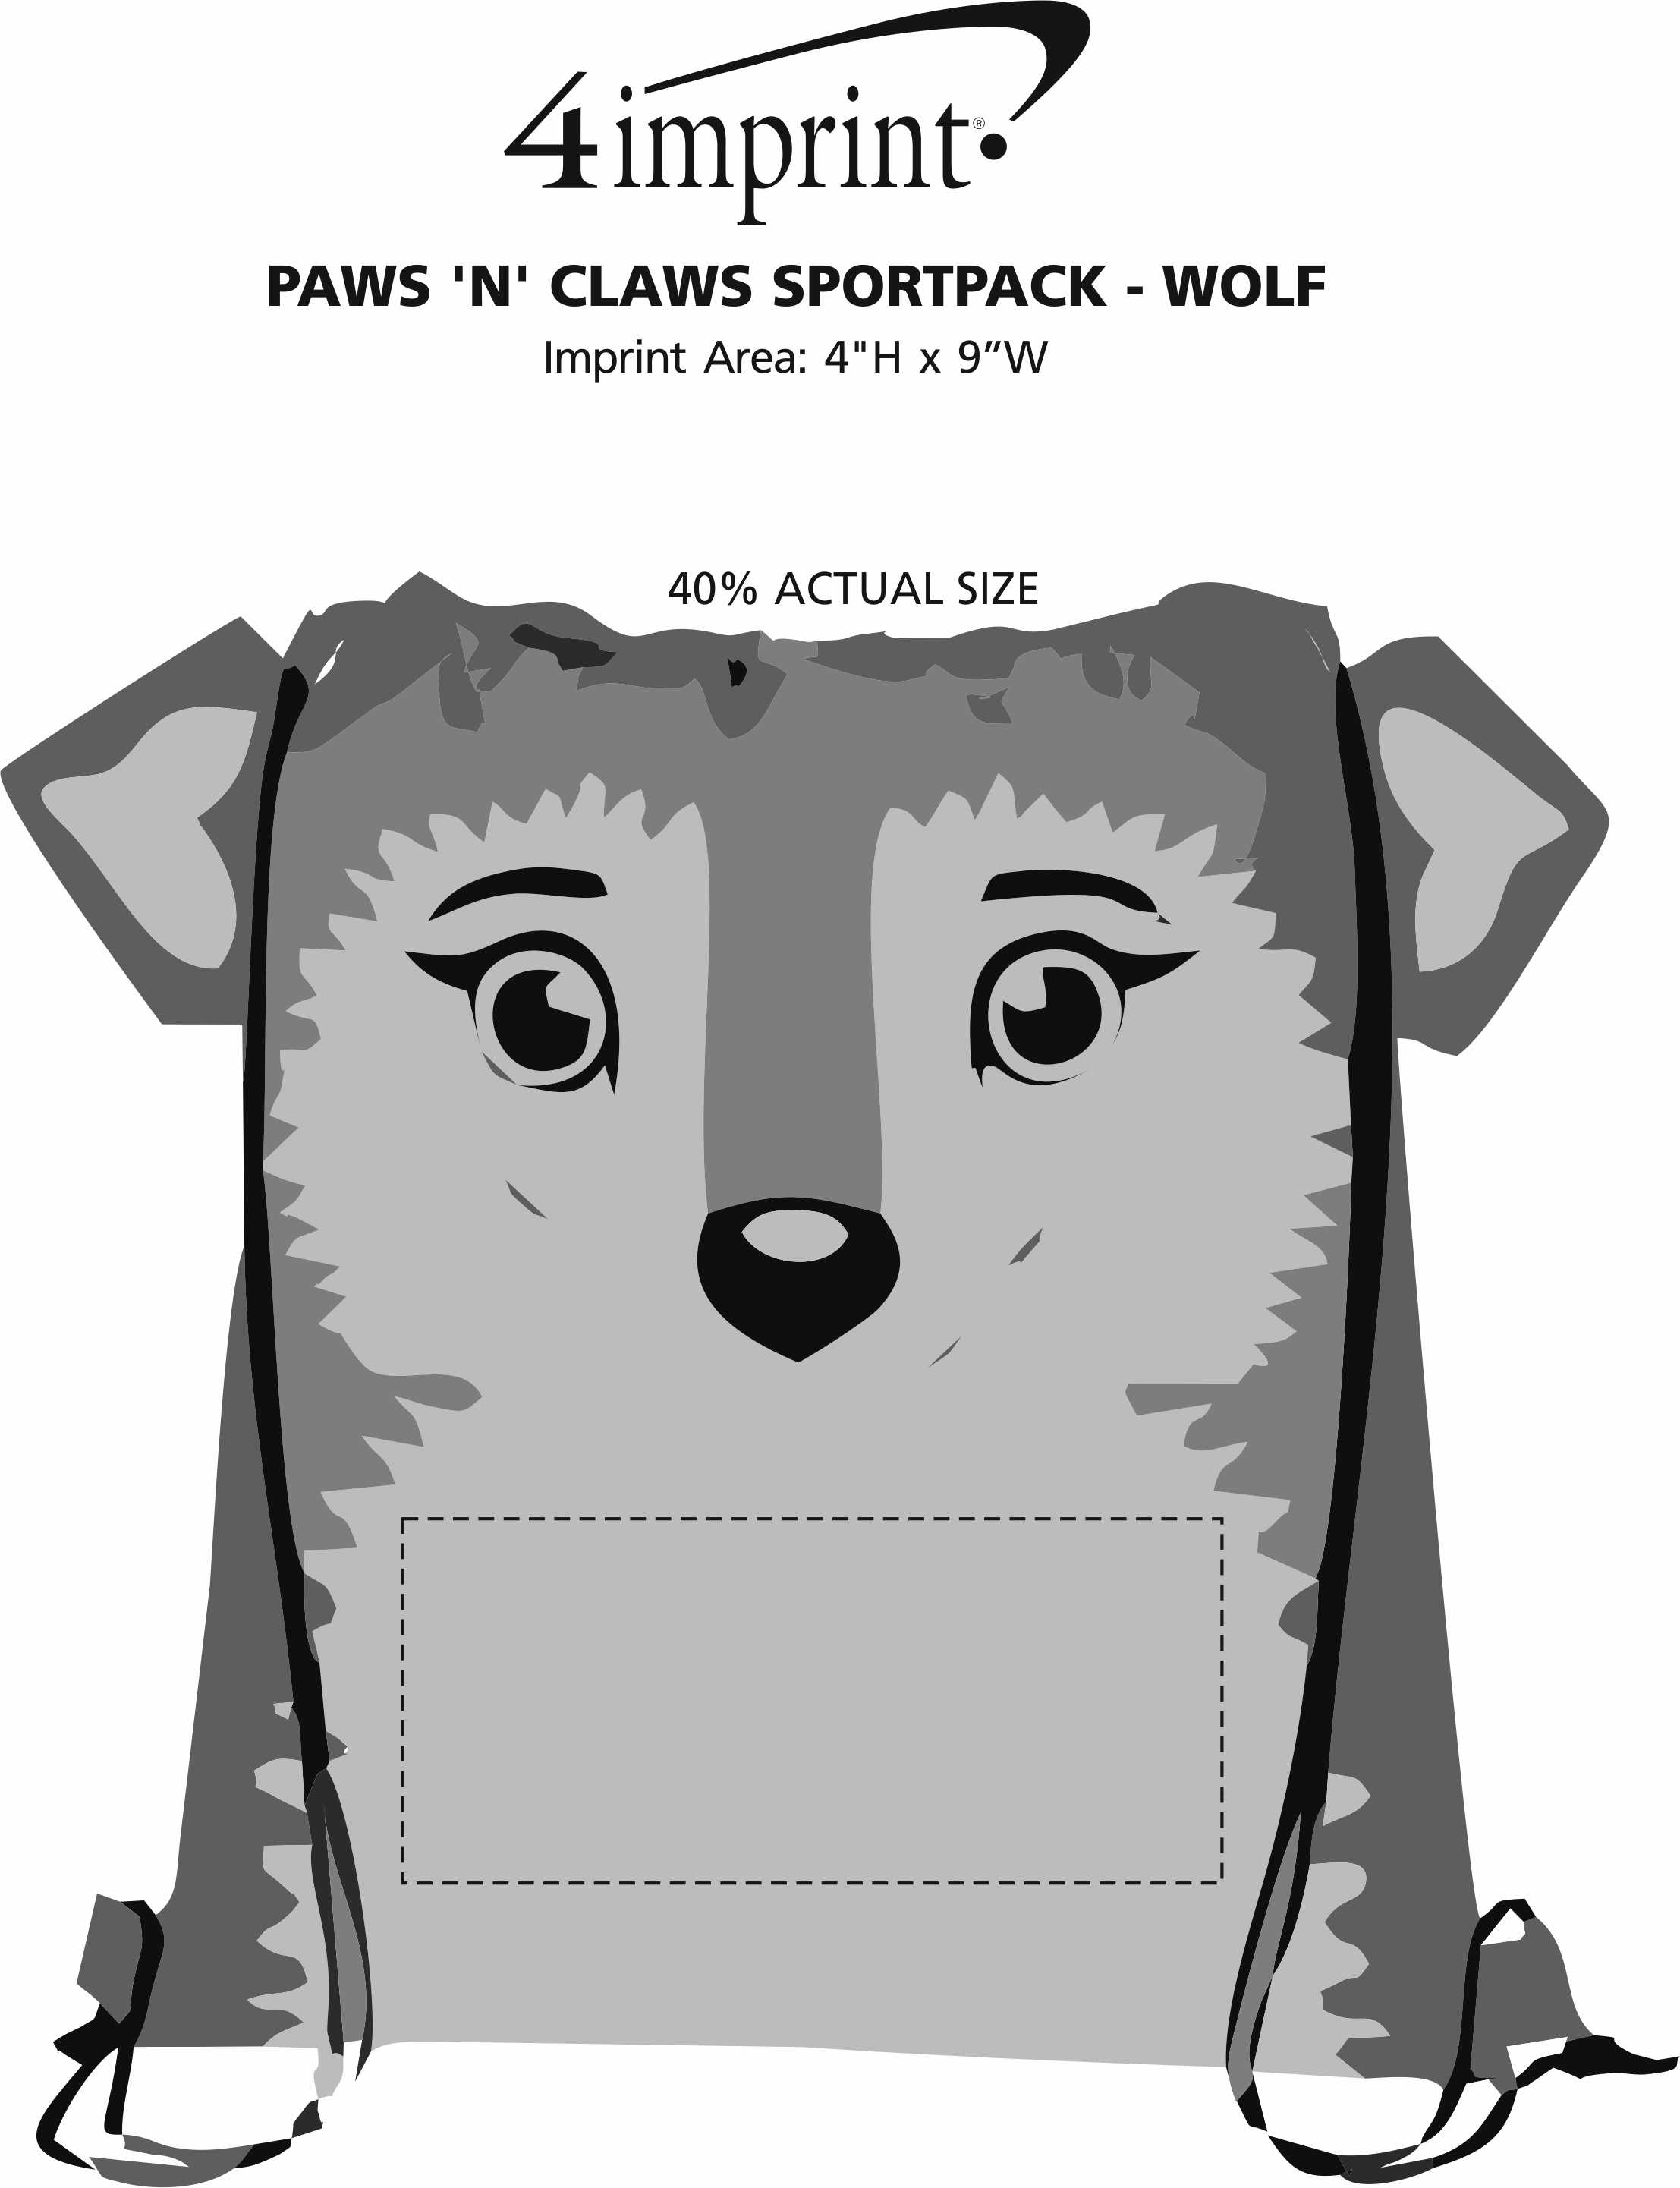 Imprint Area of Paws and Claws Sportpack - Wolf